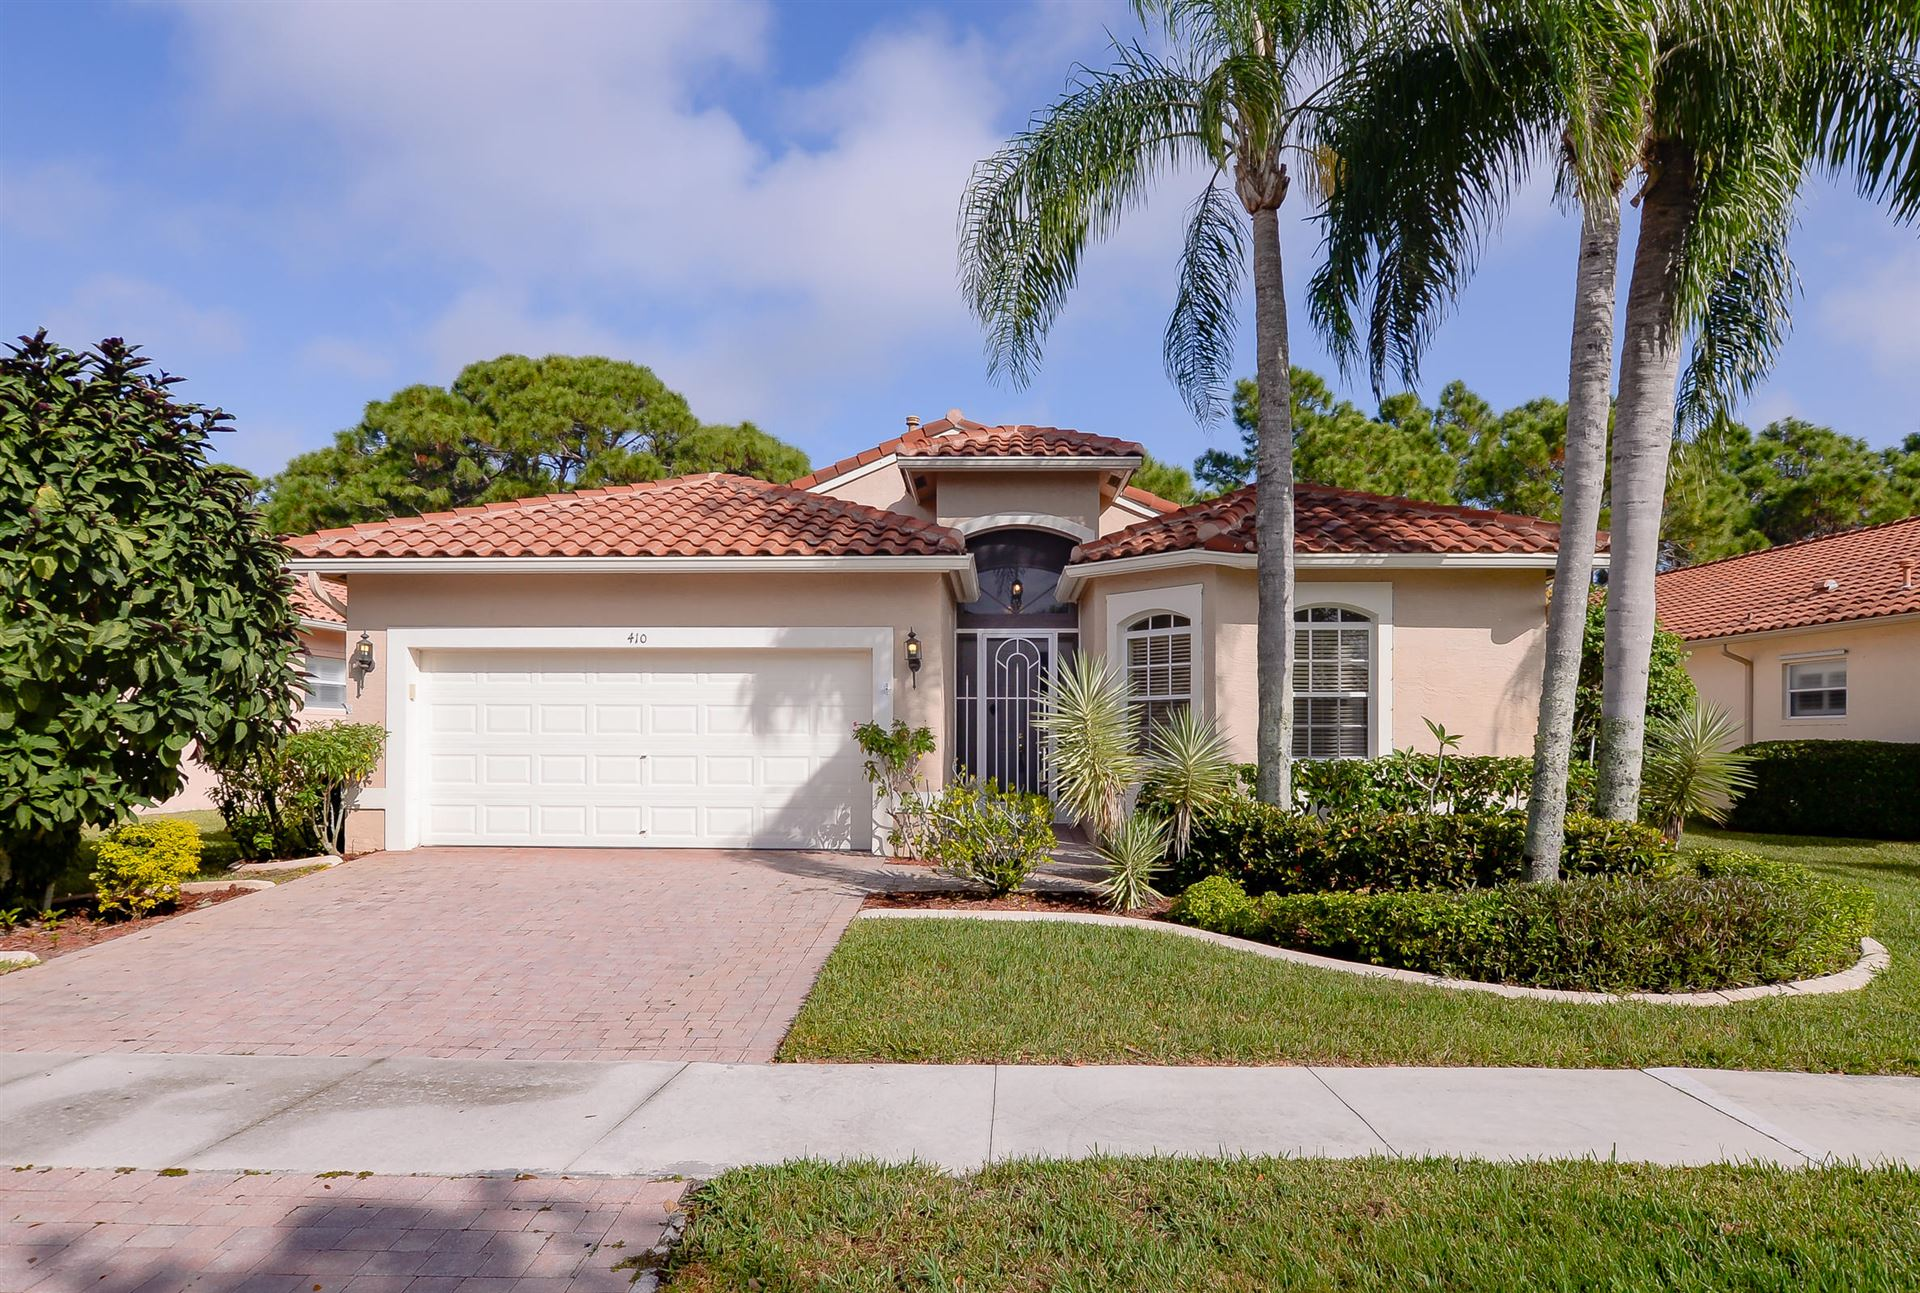 Photo of 410 NW Sunview Way, Port Saint Lucie, FL 34986 (MLS # RX-10585019)